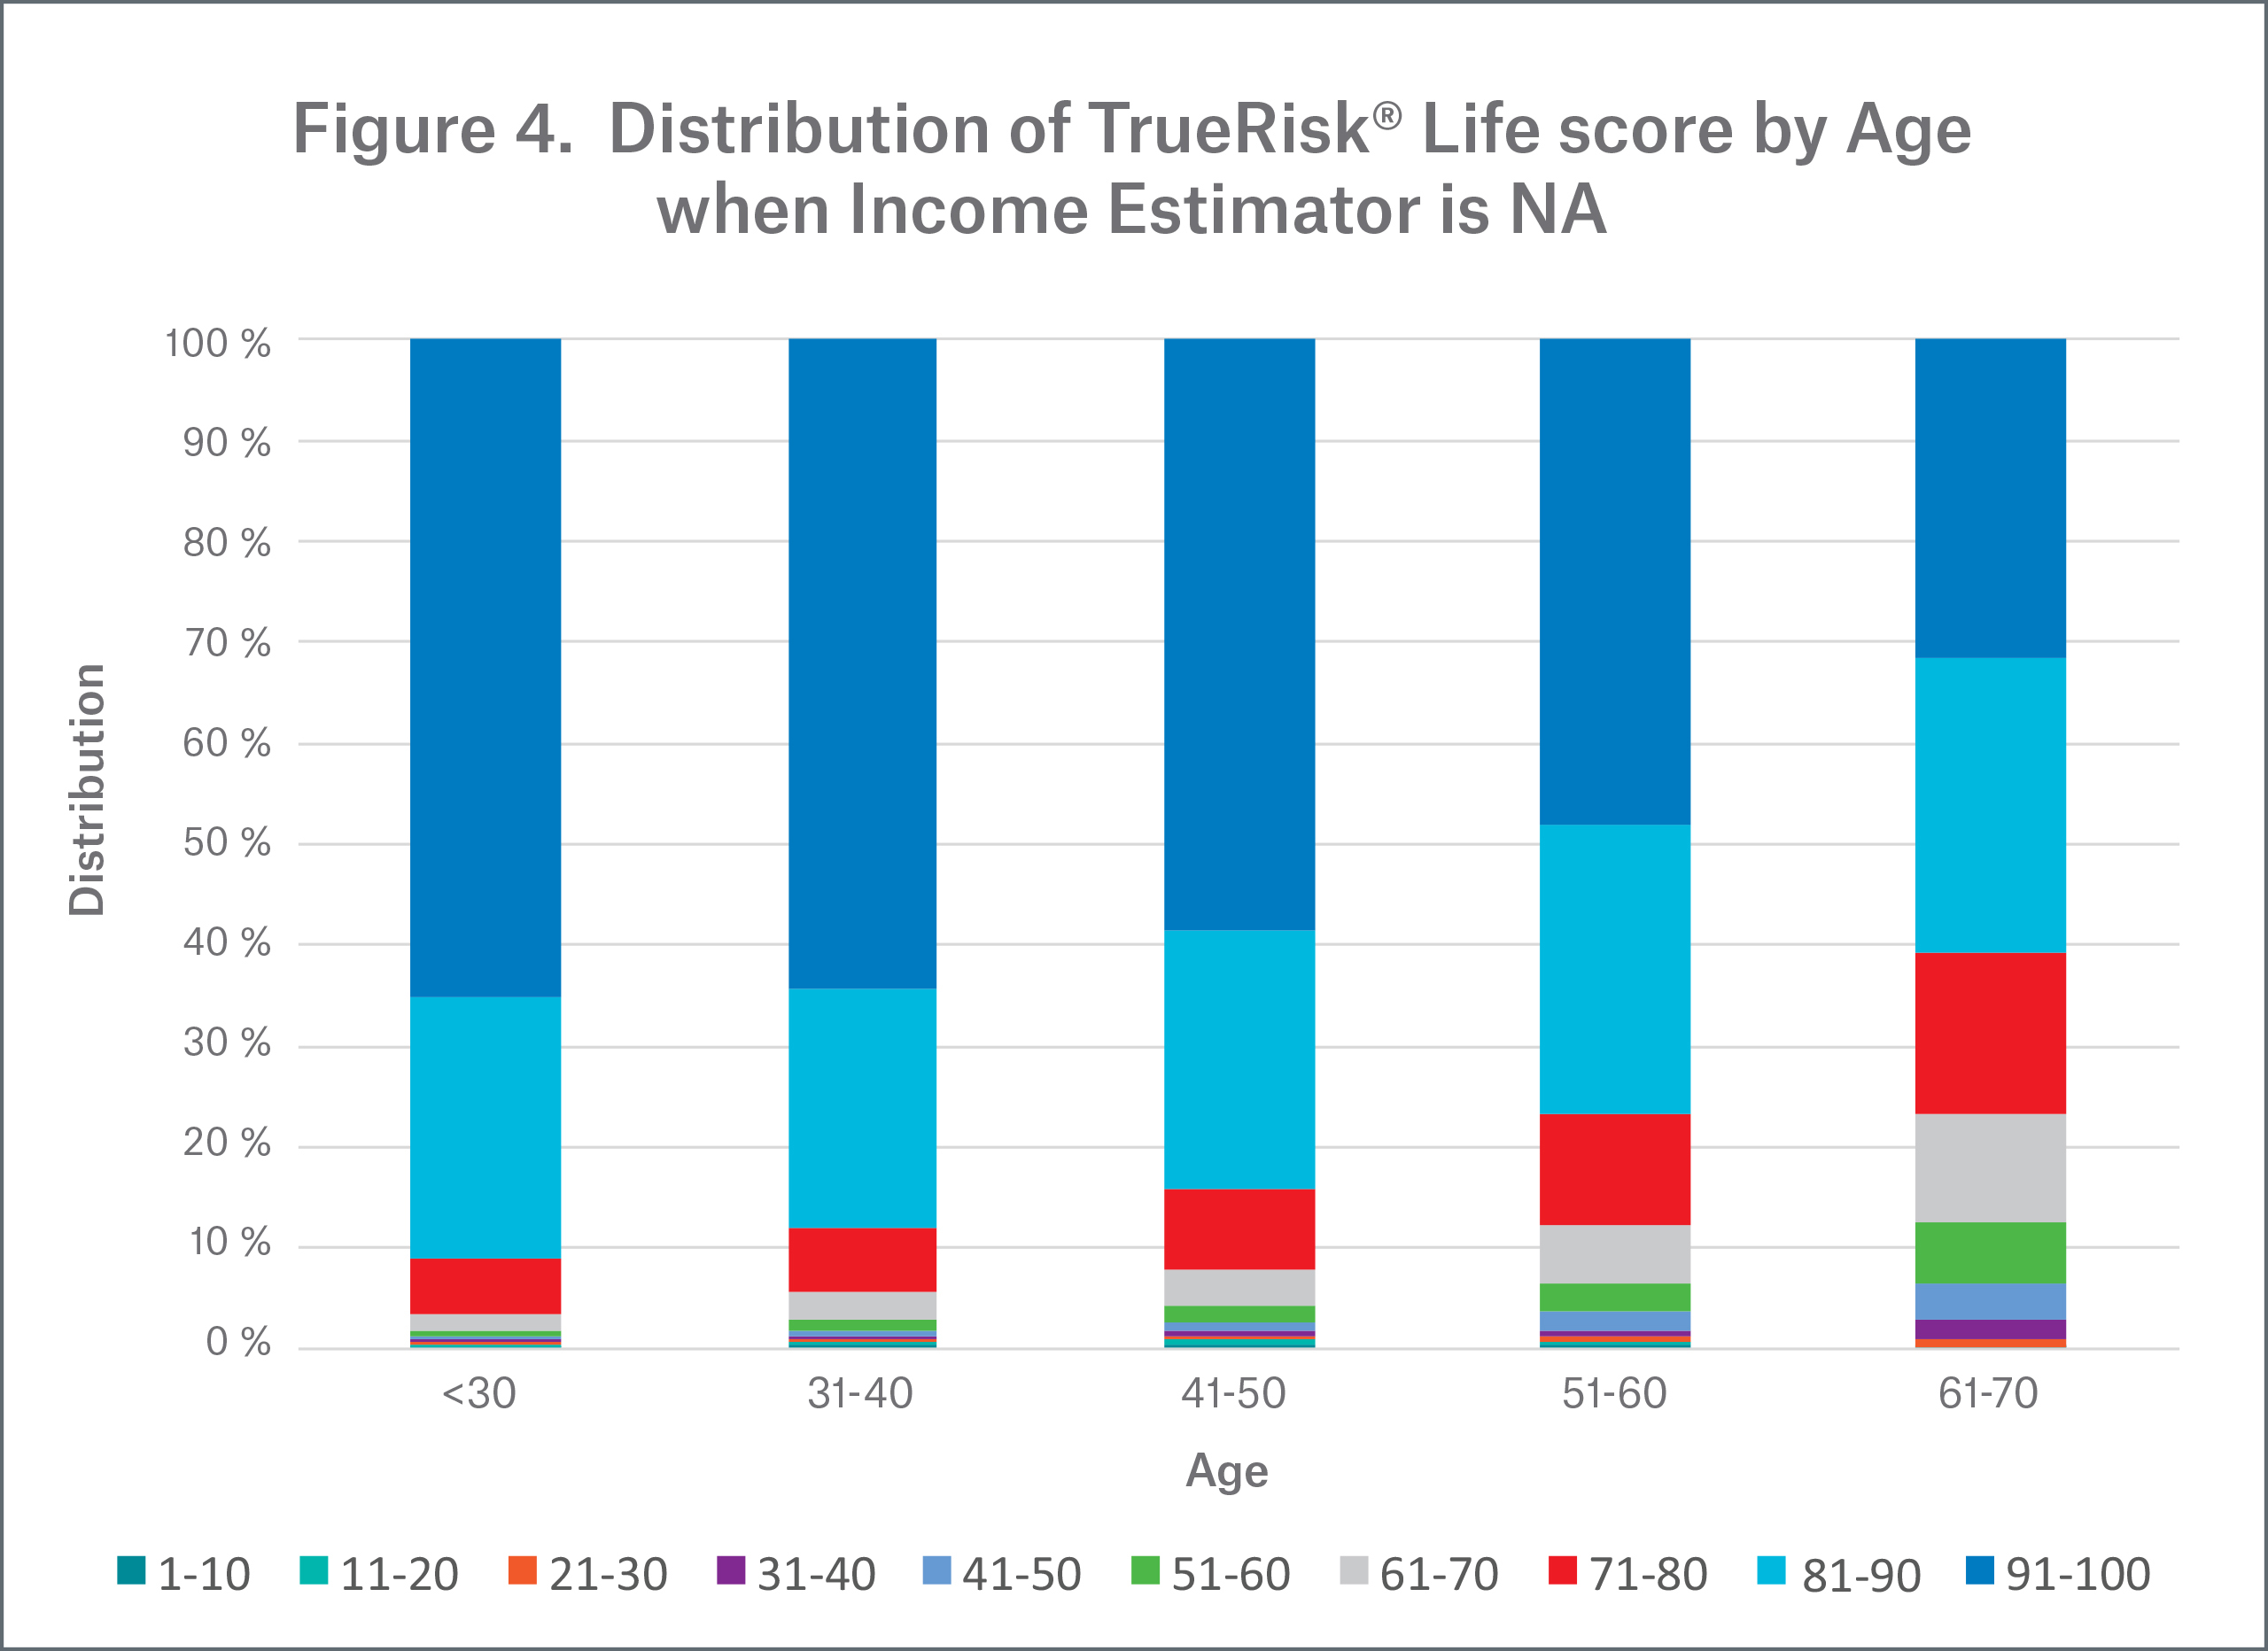 Figure 4 - Distribution of TrueRisk Life score by Age when Income Estimator is NA